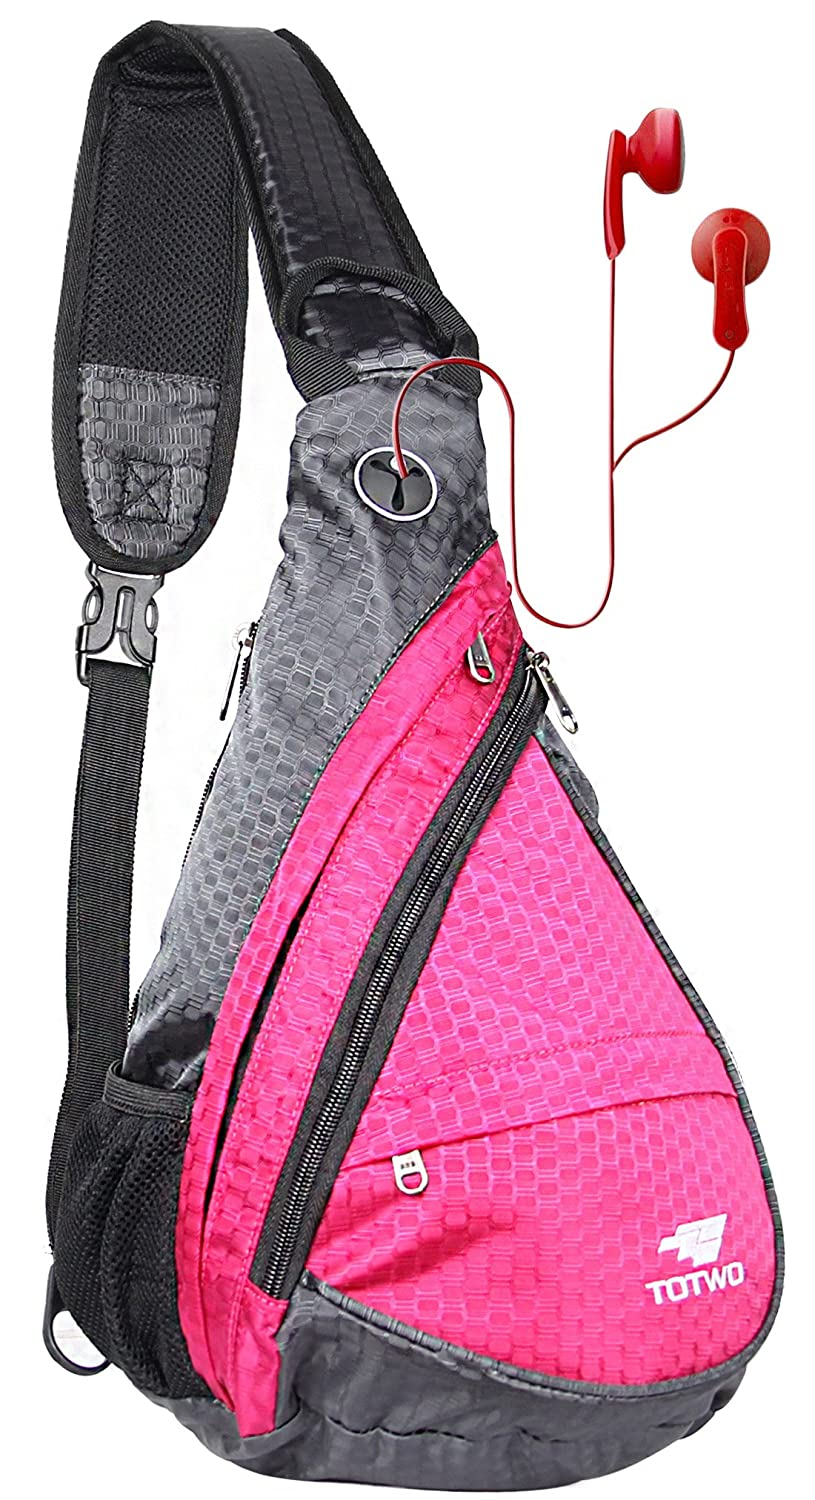 Yhlcsq Anti Theft Cross Body Bag With Water Bottle Pocket